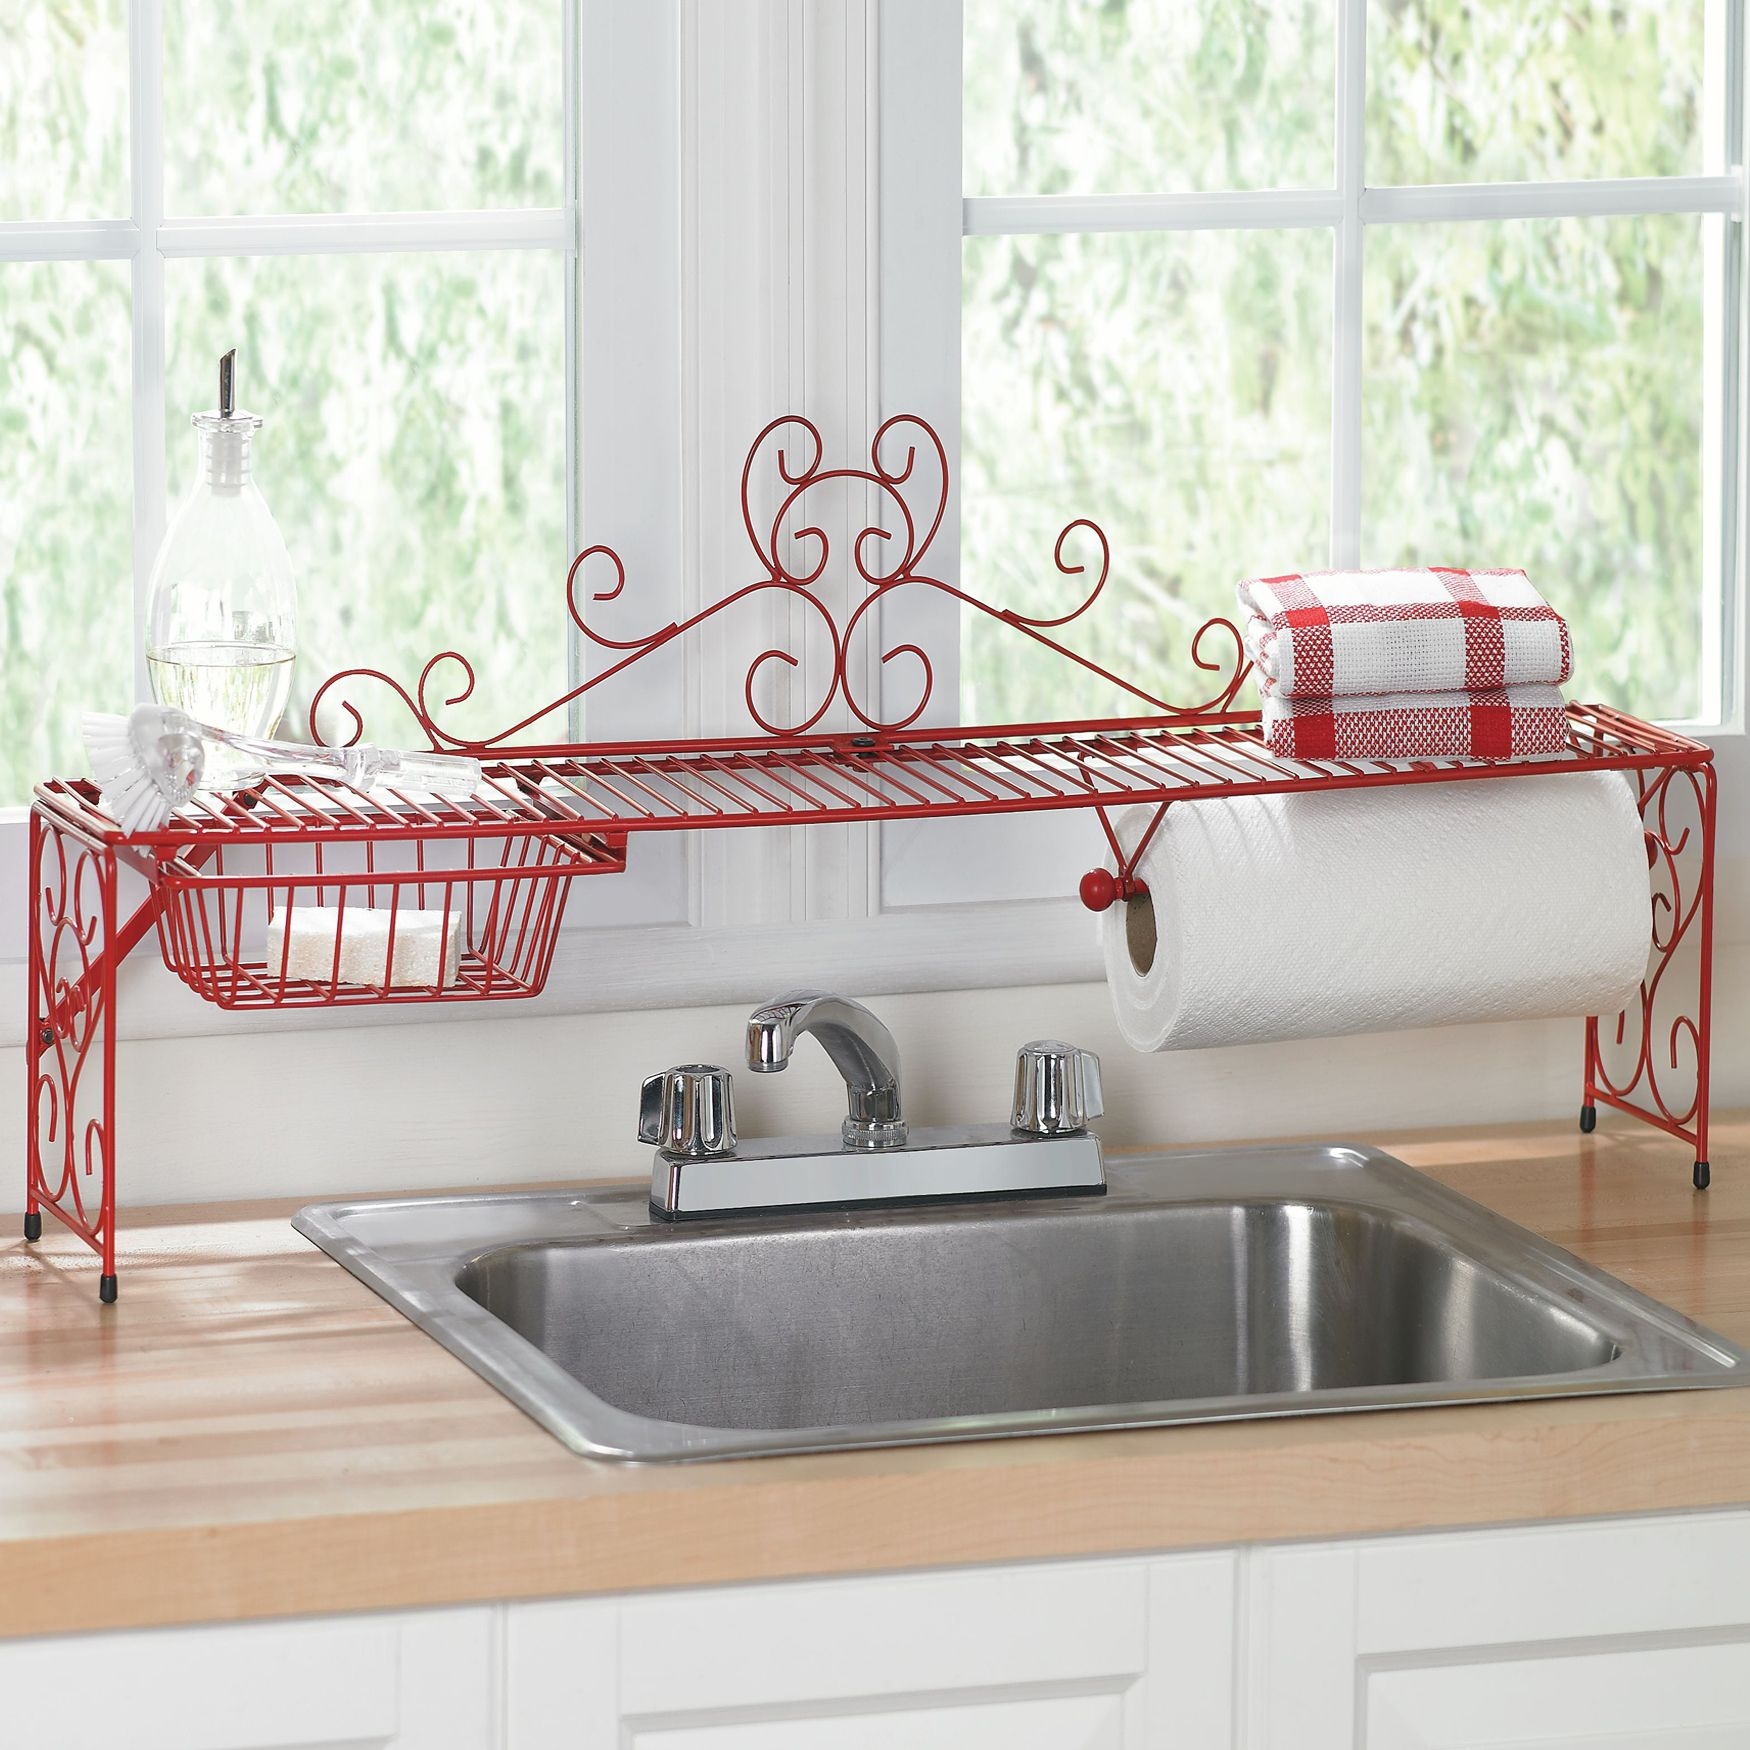 Website Photo Gallery Examples Scrolling Over the Sink Shelf Kitchen Organizers Brylanehome